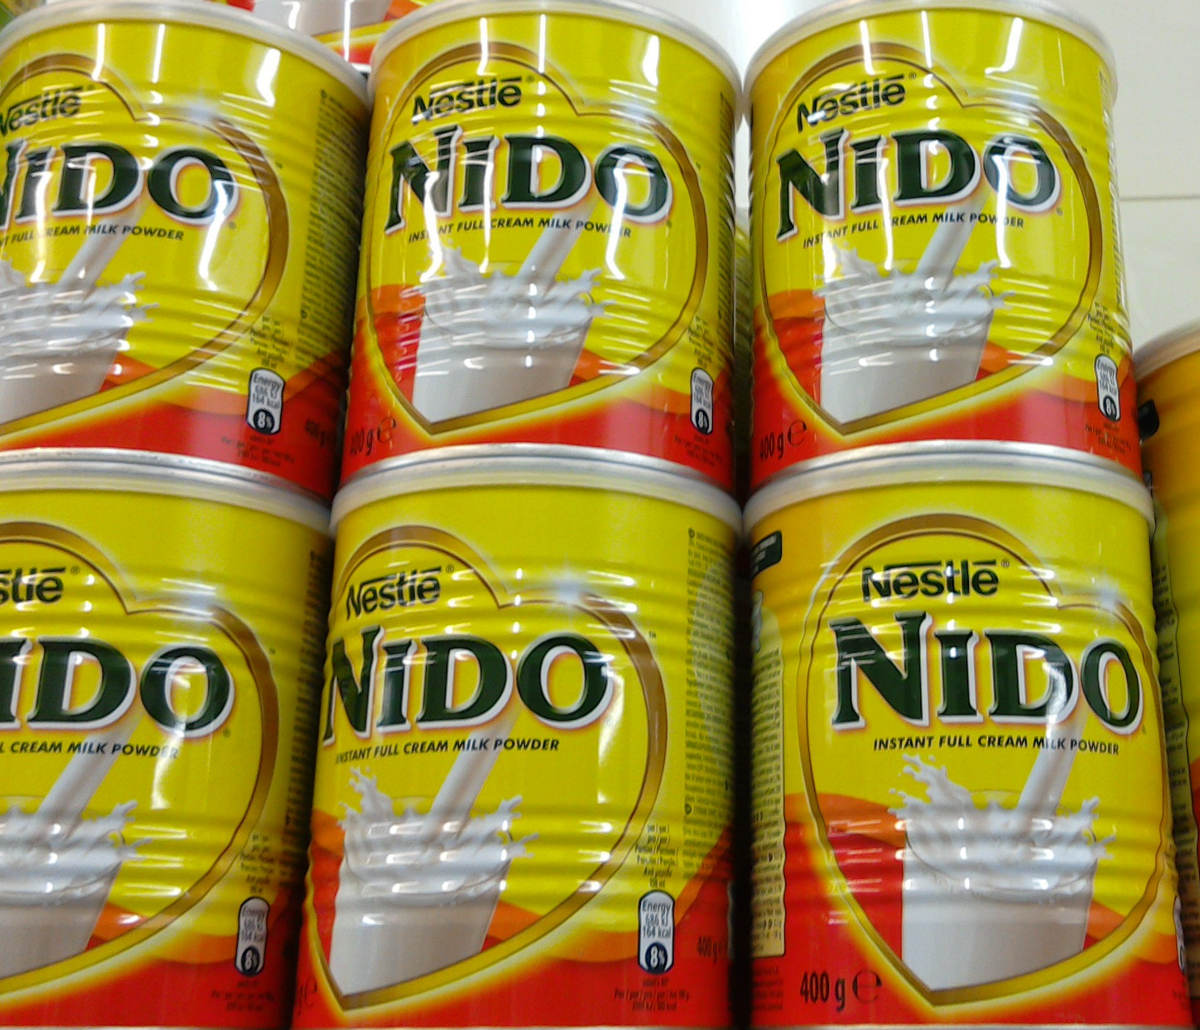 NIDO NESTLE SUPPLIERS